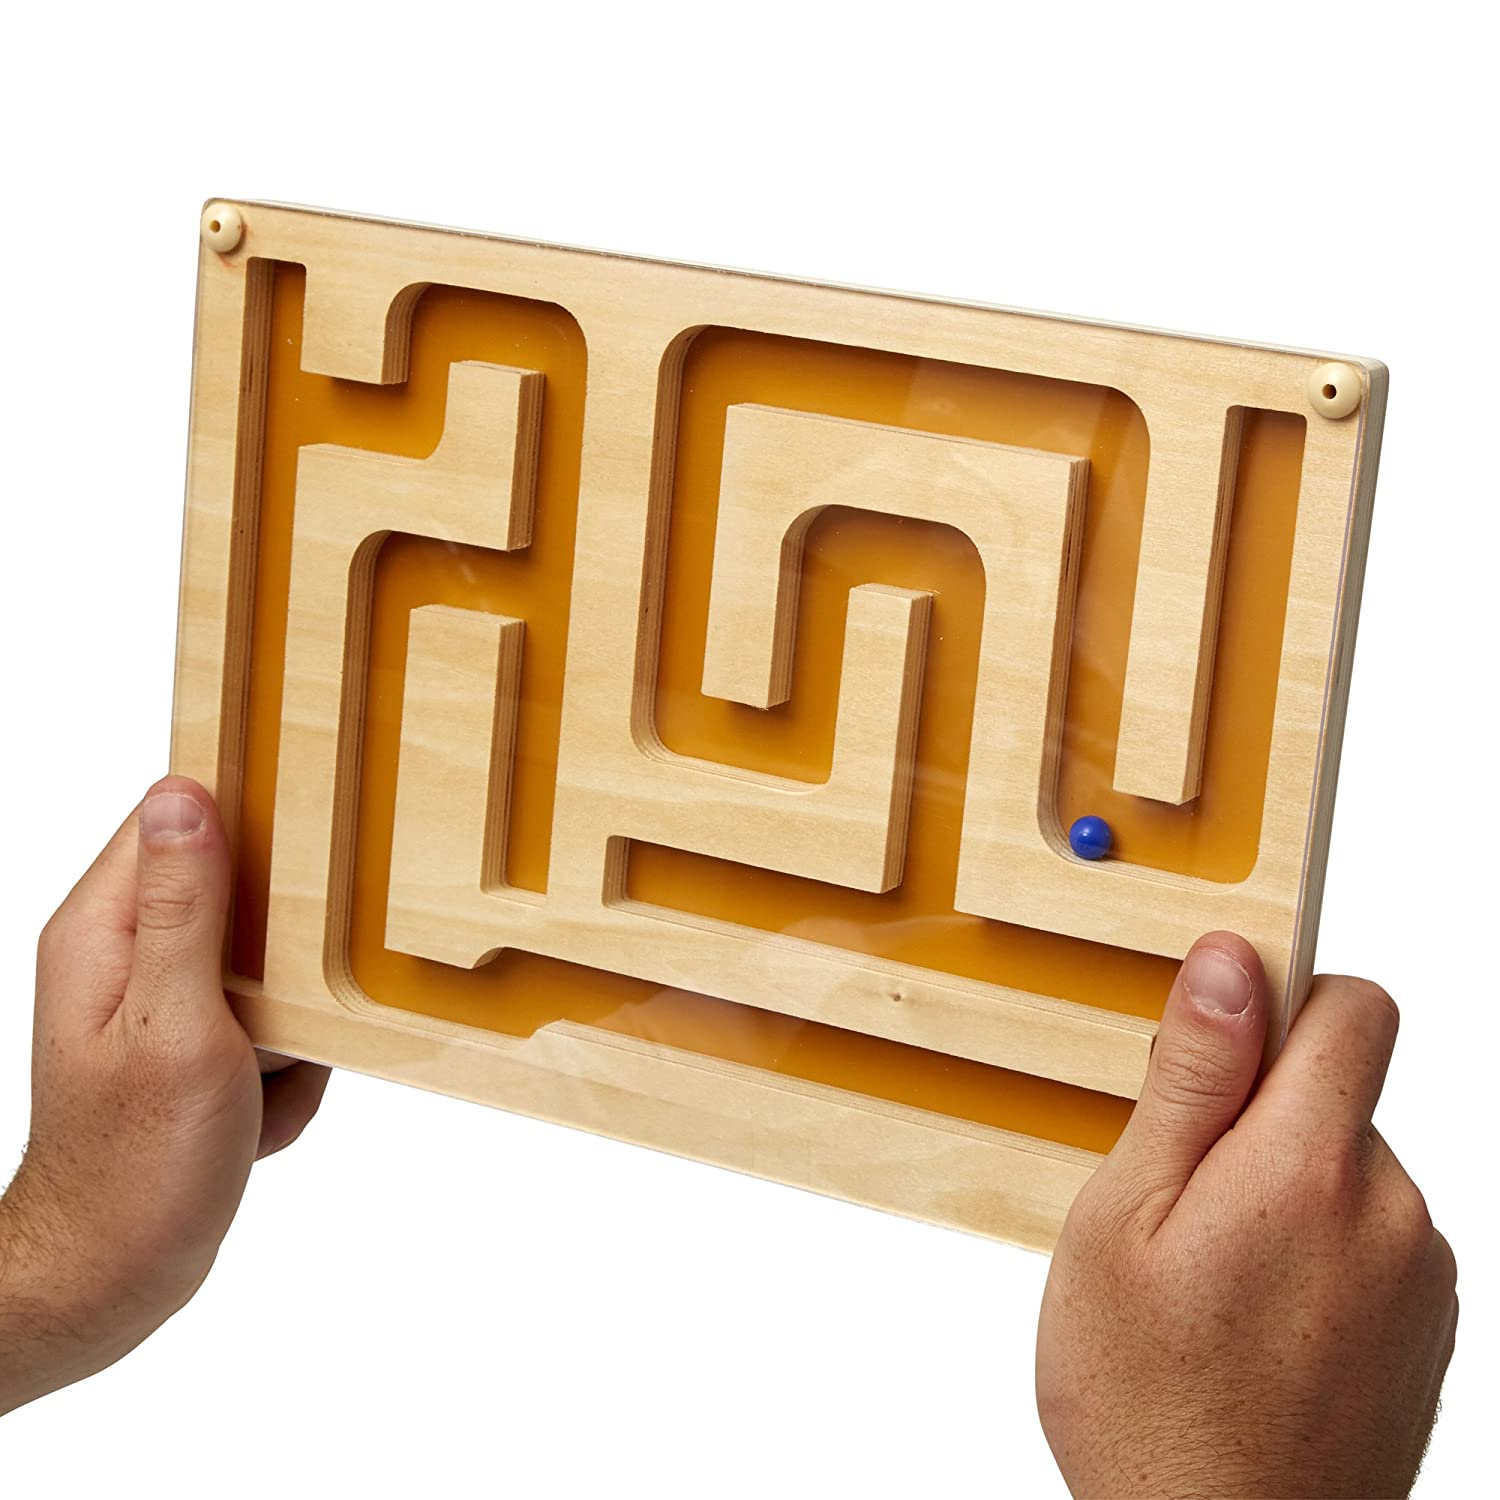 Active Minds Track Maze: Specialist Alzheimer's / Dementia Games and Resources